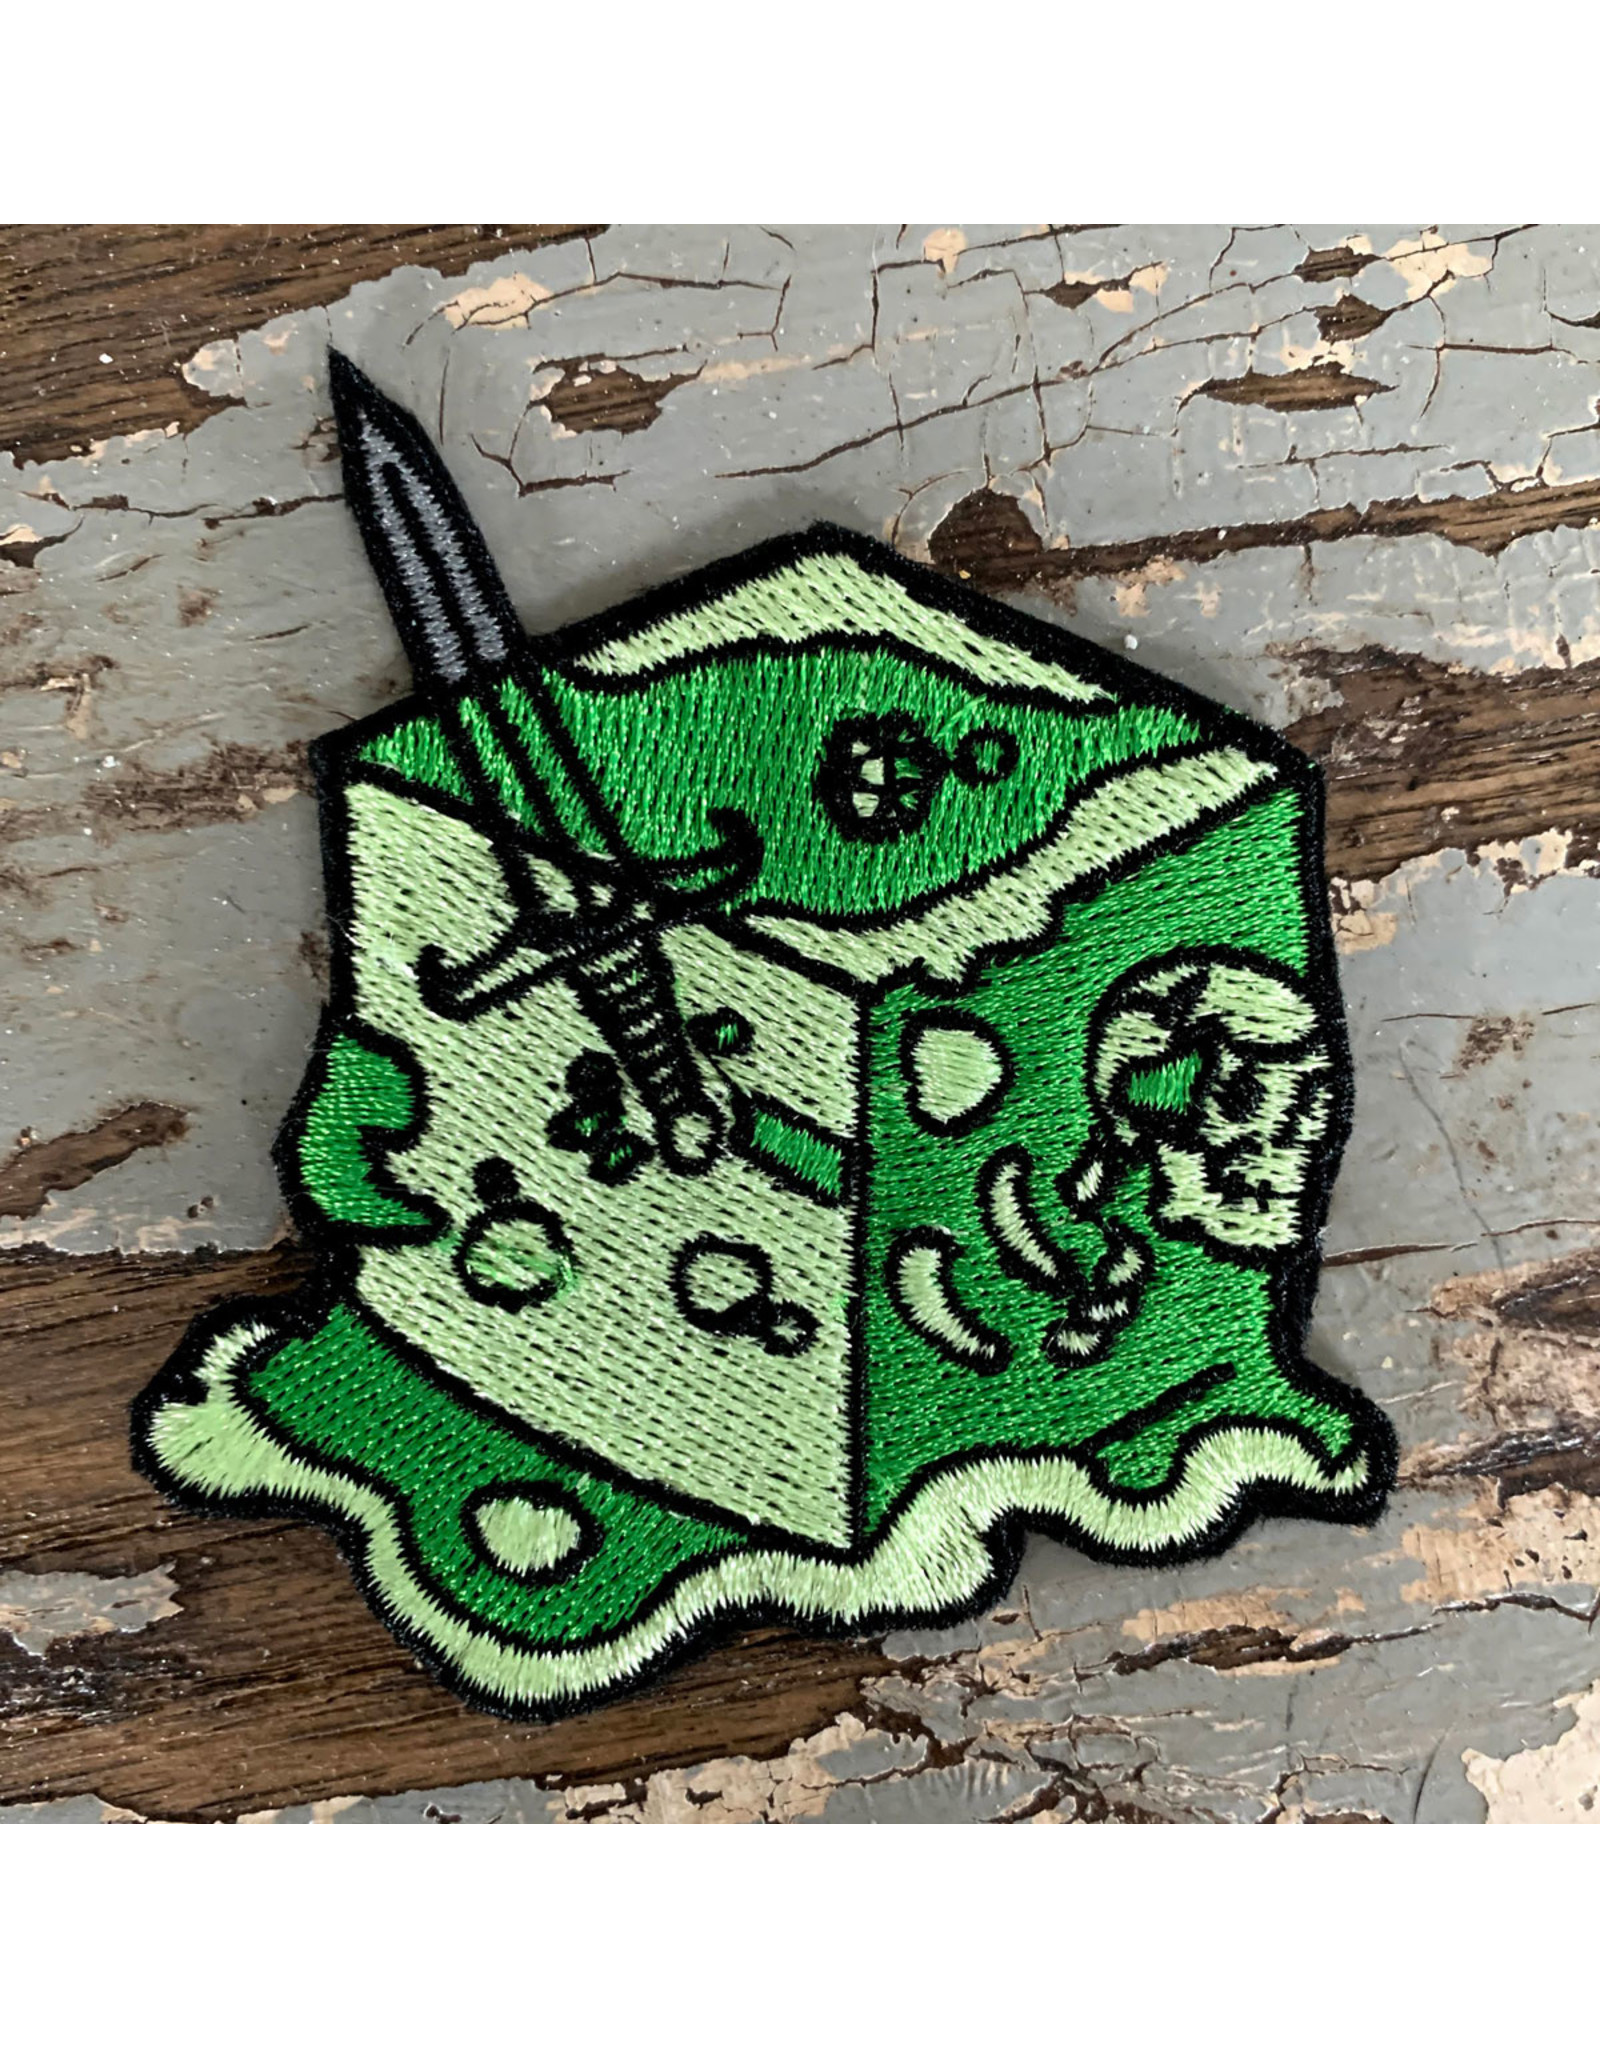 Creature Curation Gelatinous Cube – Patch